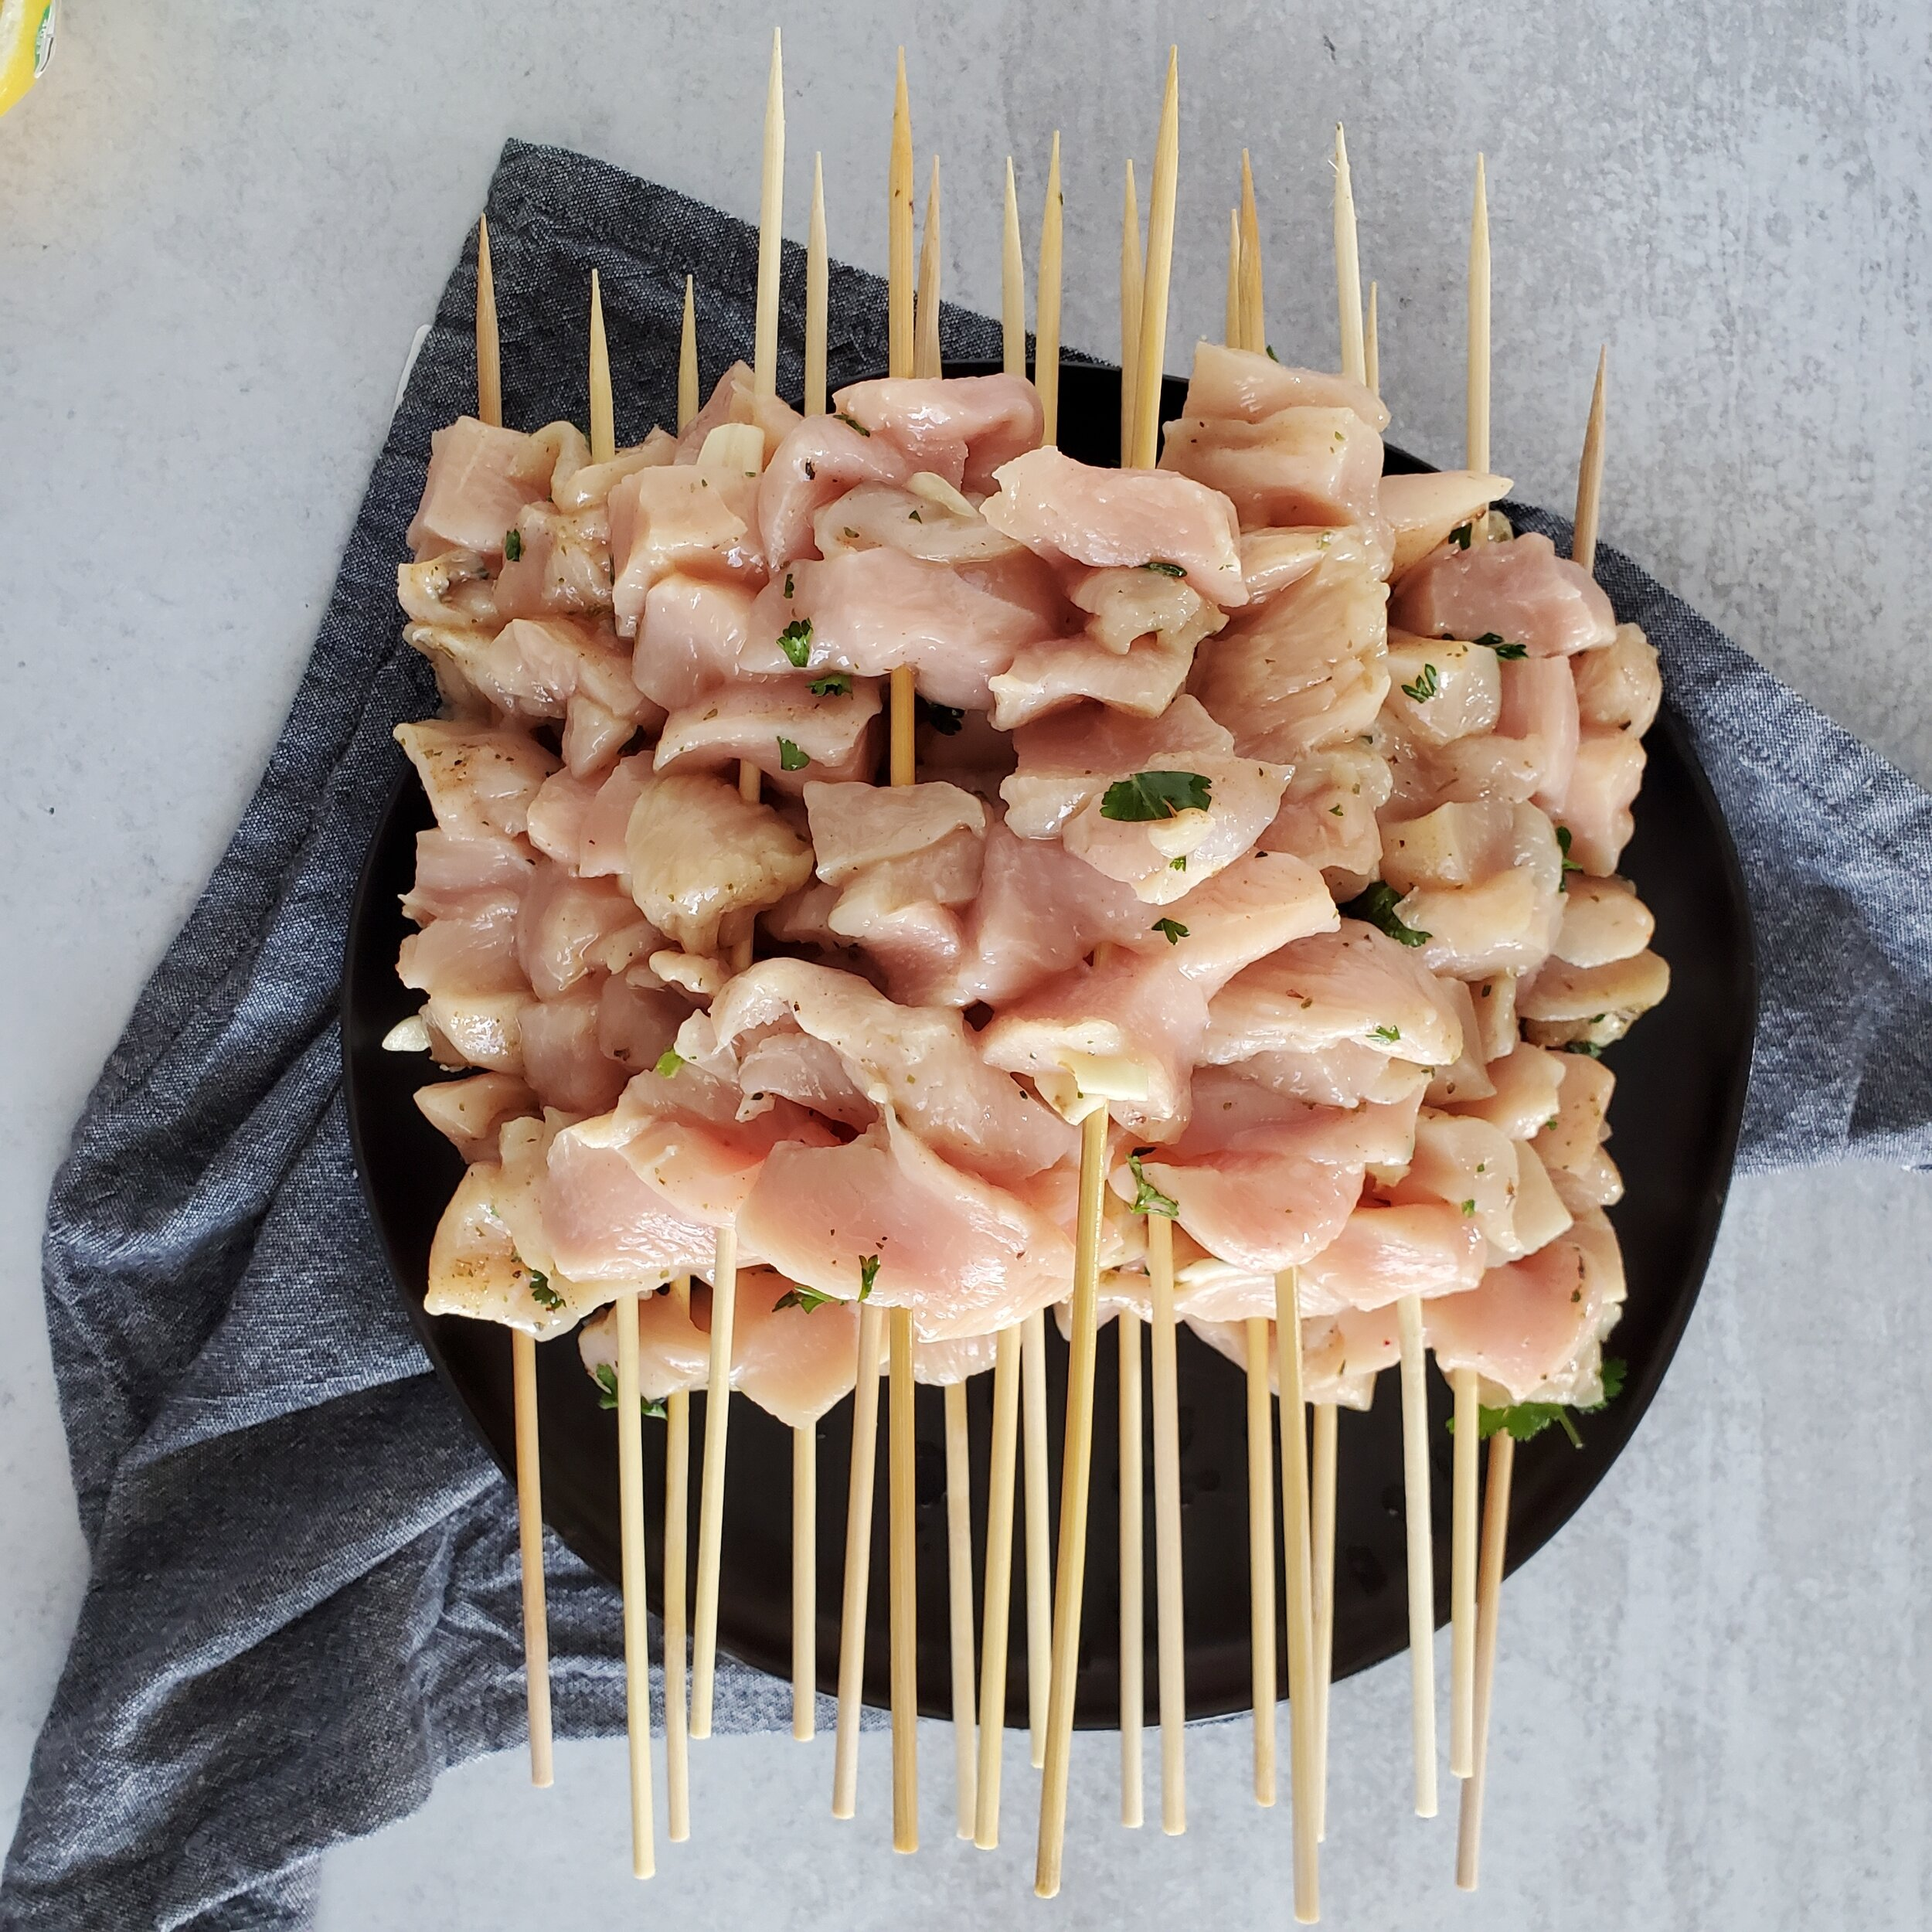 Add 8 chunks of chicken to each skewer. Don't overcrowd each piece of chicken, let there be a little space so the chicken can cook evenly. -